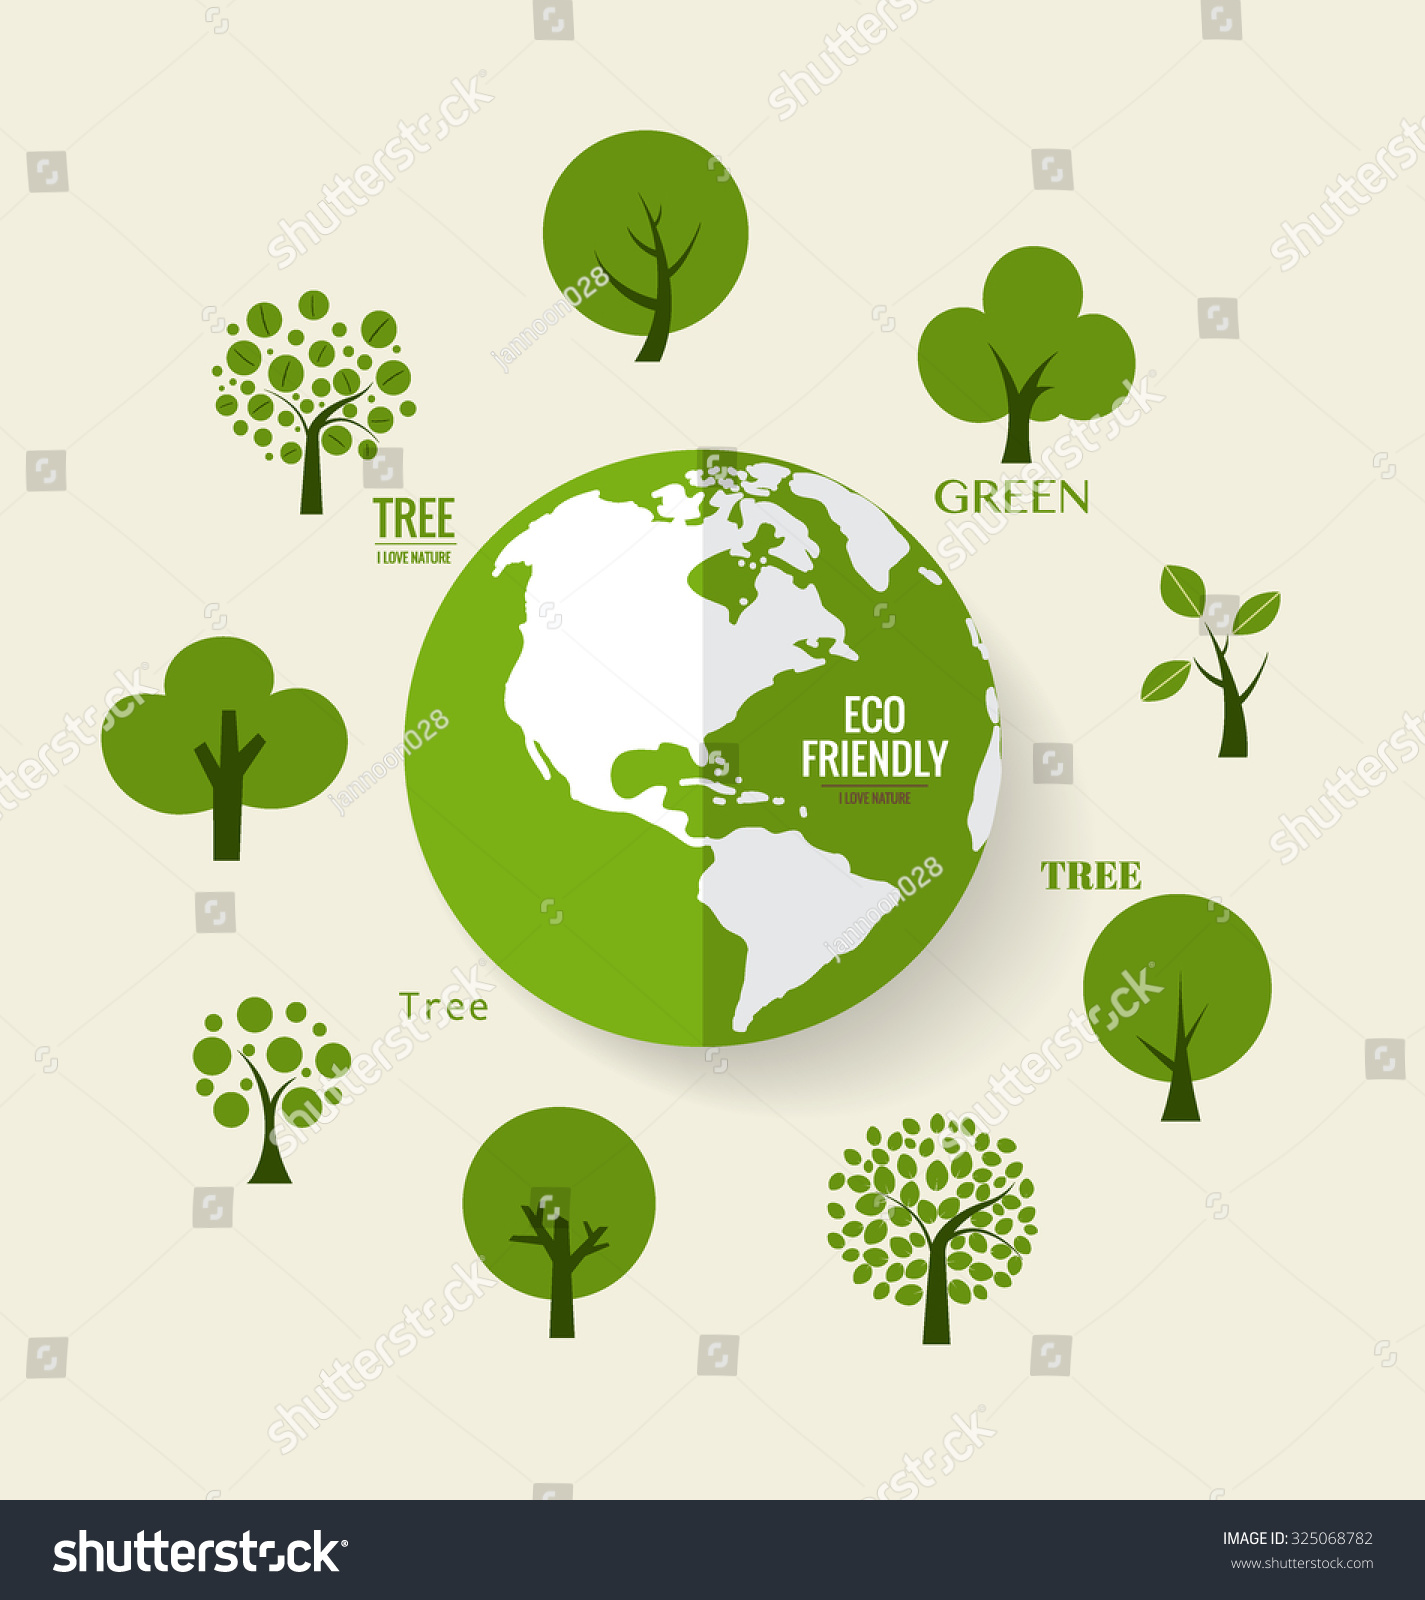 eco friendly ecology concept green eco stock vector 325068782 shutterstock. Black Bedroom Furniture Sets. Home Design Ideas